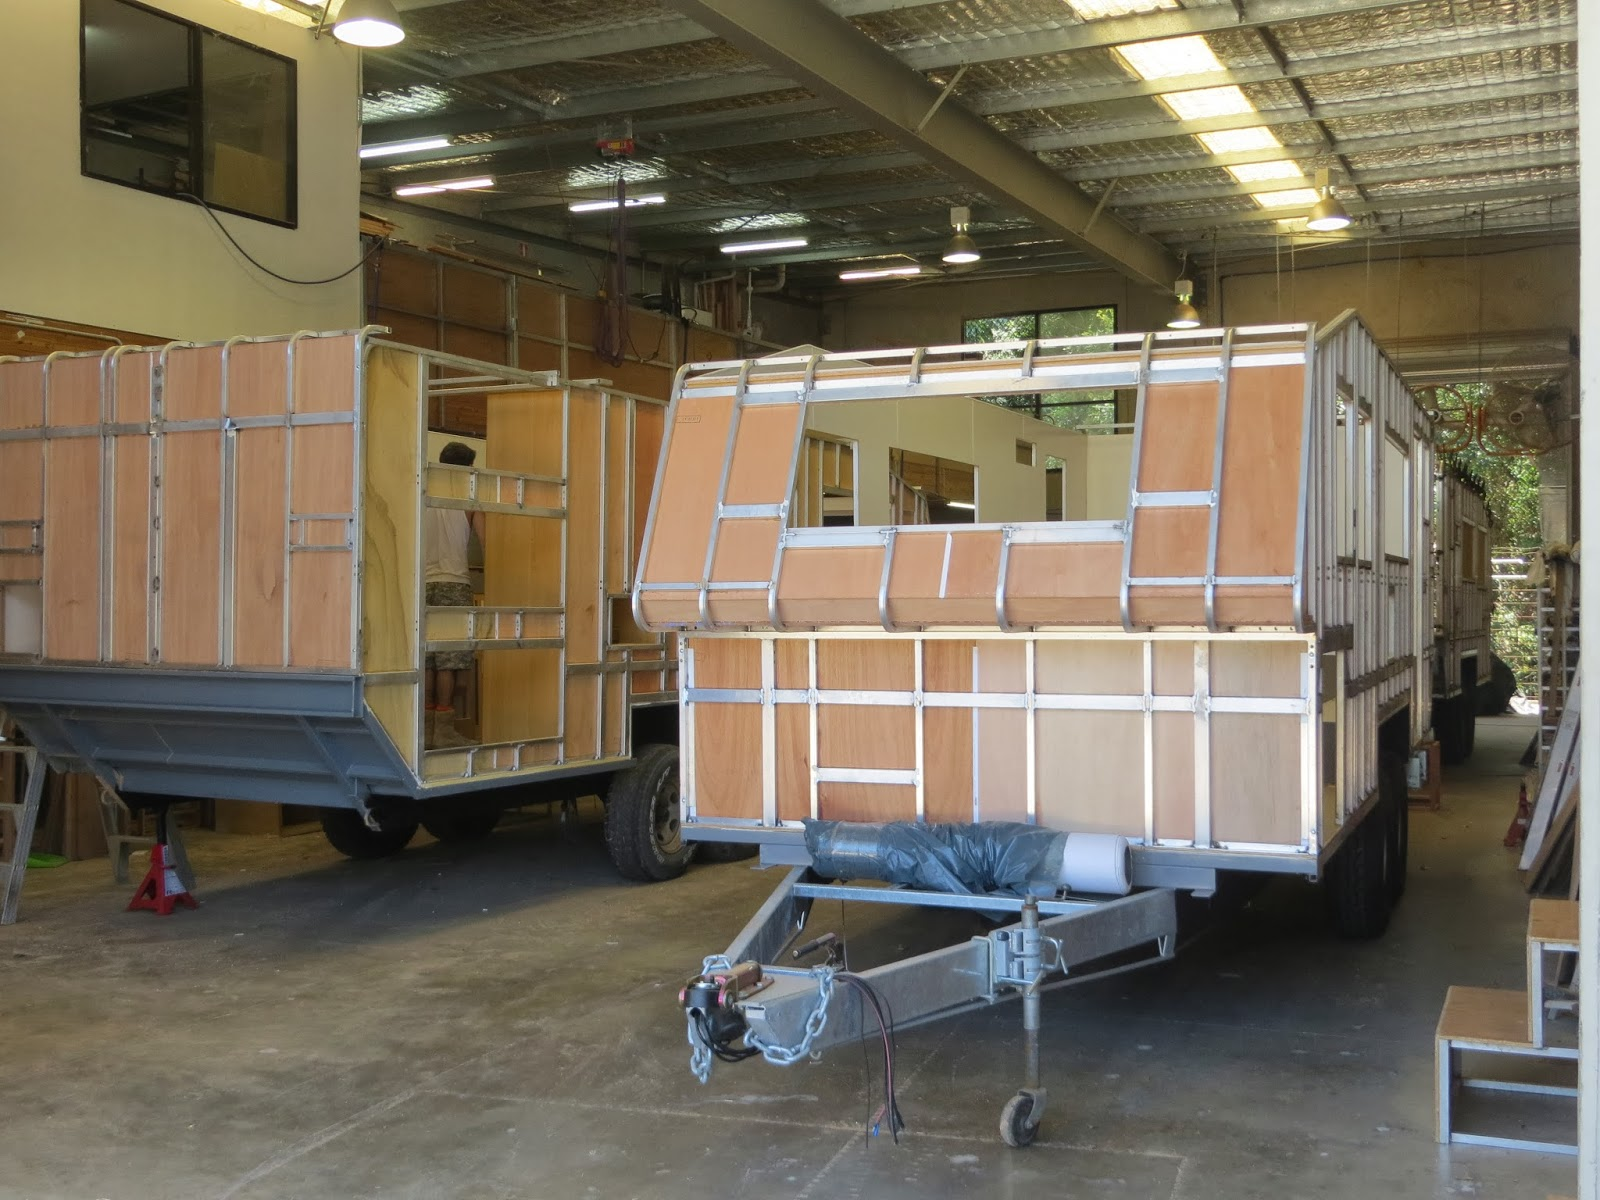 Beds That Are High Off The Floor Part - 32: Each Component Of The Van Is Custom Made According To The Production  Schedule. However, Some Elements Of Design Are Ongoing. For Example, We  Made Some ...